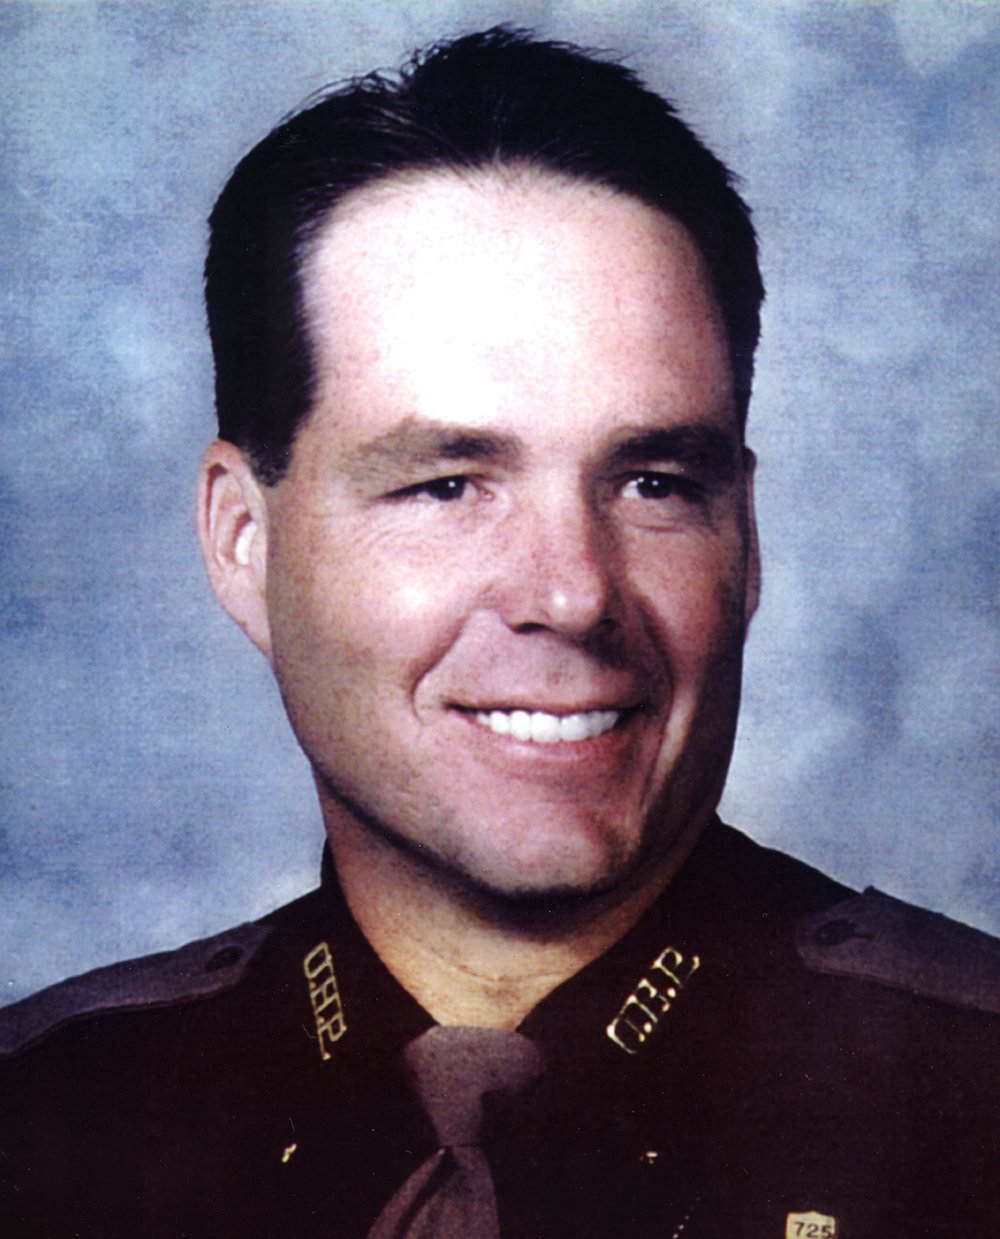 Trooper Steven R. Smith    February 9, 2006   Trooper Steve Smith was shot by an armed man at a cemetery near Bernice, Oklahoma. On April 25th, 1999, Trooper Eddie Rose and Grove Police Department responded to a reported homicide where a body was found in the cemetery. Shortly after they arrived on the scene, an armed man confronted them. The officers directed him to surrender his weapon but he refused. Trooper Smith and the Delaware County Sheriff arrived to assist and during a struggle with the suspect, both officers were wounded from shots fired by the suspect. The suspect, Carlton Davis, then shot and killed himself. Trooper Smith suffered a gunshot to the neck and the injuries left him permanently and totally disabled. The shooting forced Trooper Smith to take medical retirement in 2000. Trooper Smith's injuries that day ultimately resulted in his death.